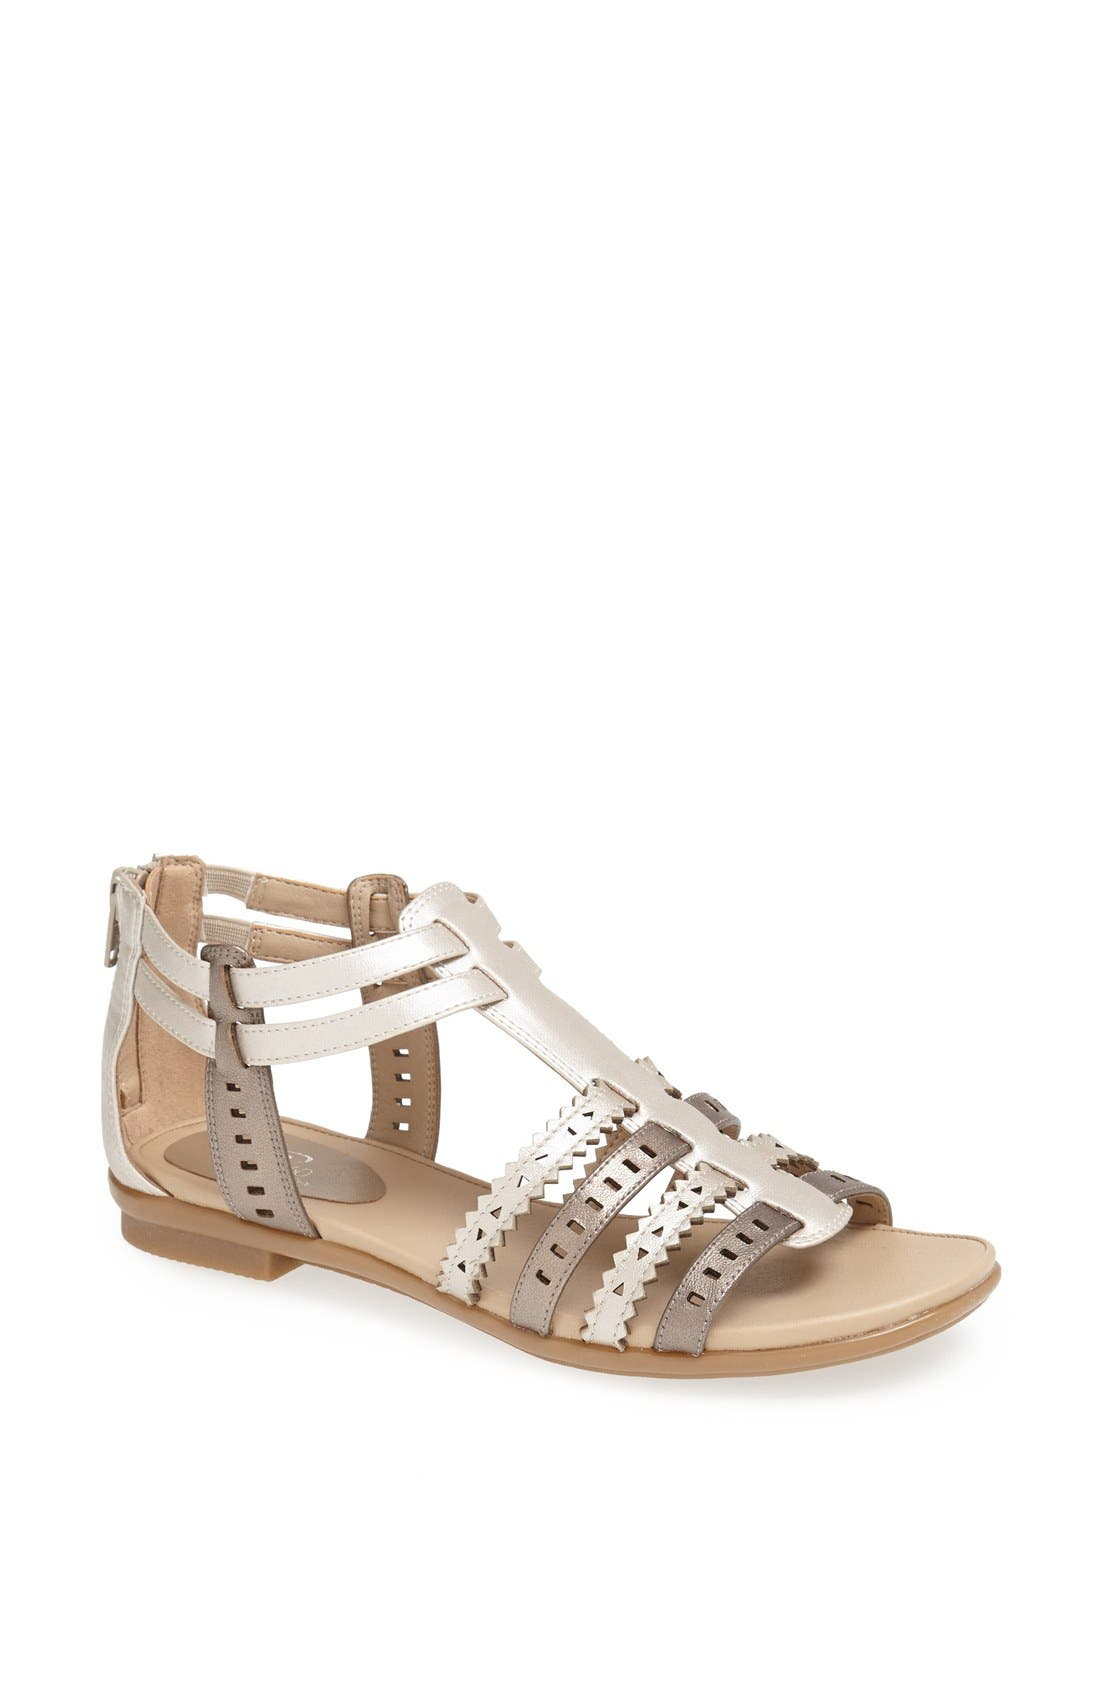 Main Image - Easy Spirit 'e360 - Karelly' Pinked & Perforated Leather Back Zip Sandal (Women)